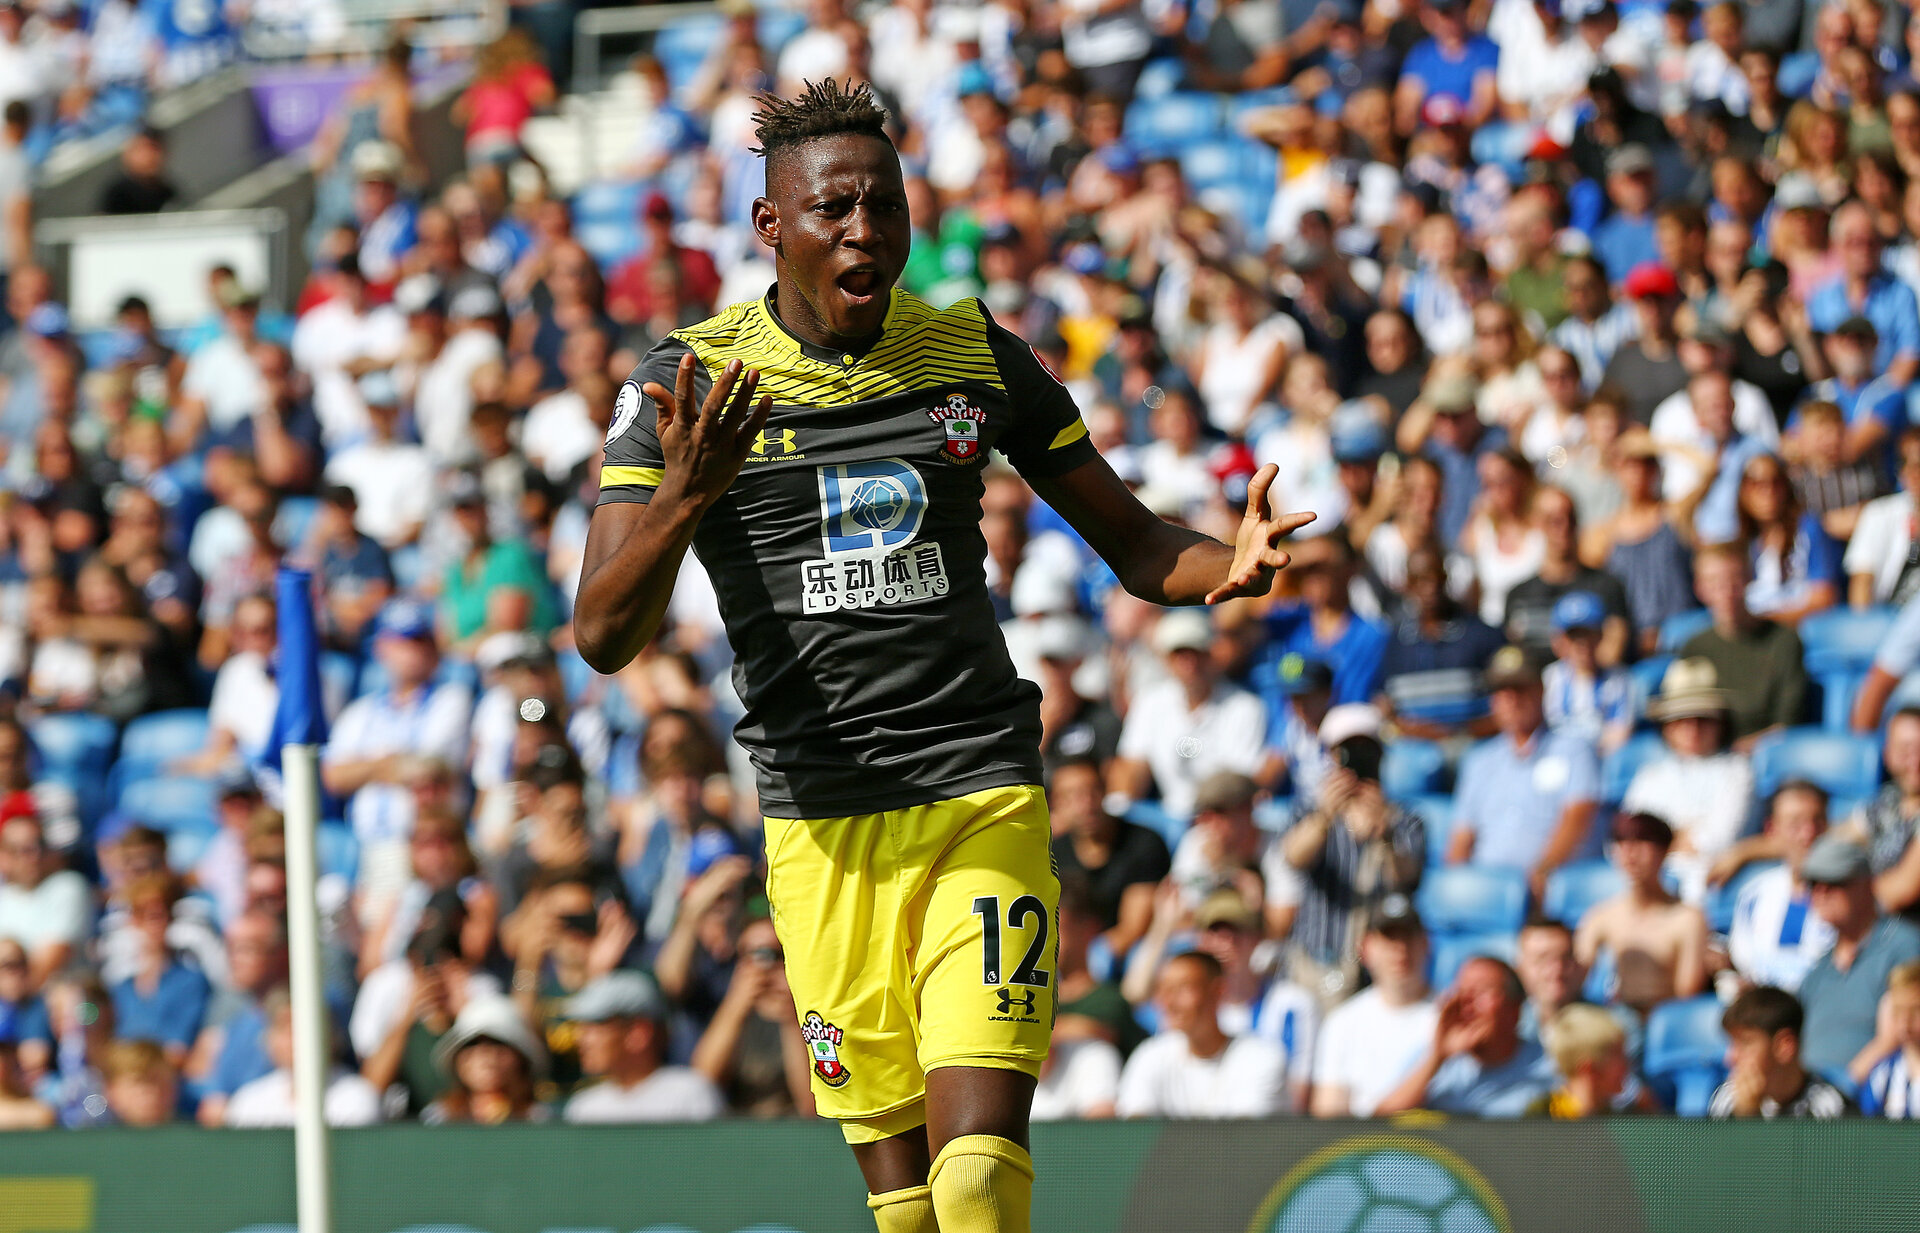 BRIGHTON, ENGLAND - AUGUST 24: Moussa Djenepo of Southampton celebrates his goal during the Premier League match between Brighton & Hove Albion and Southampton FC at American Express Community Stadium on August 24, 2019 in Brighton, United Kingdom. (Photo by Matt Watson/Southampton FC via Getty Images)